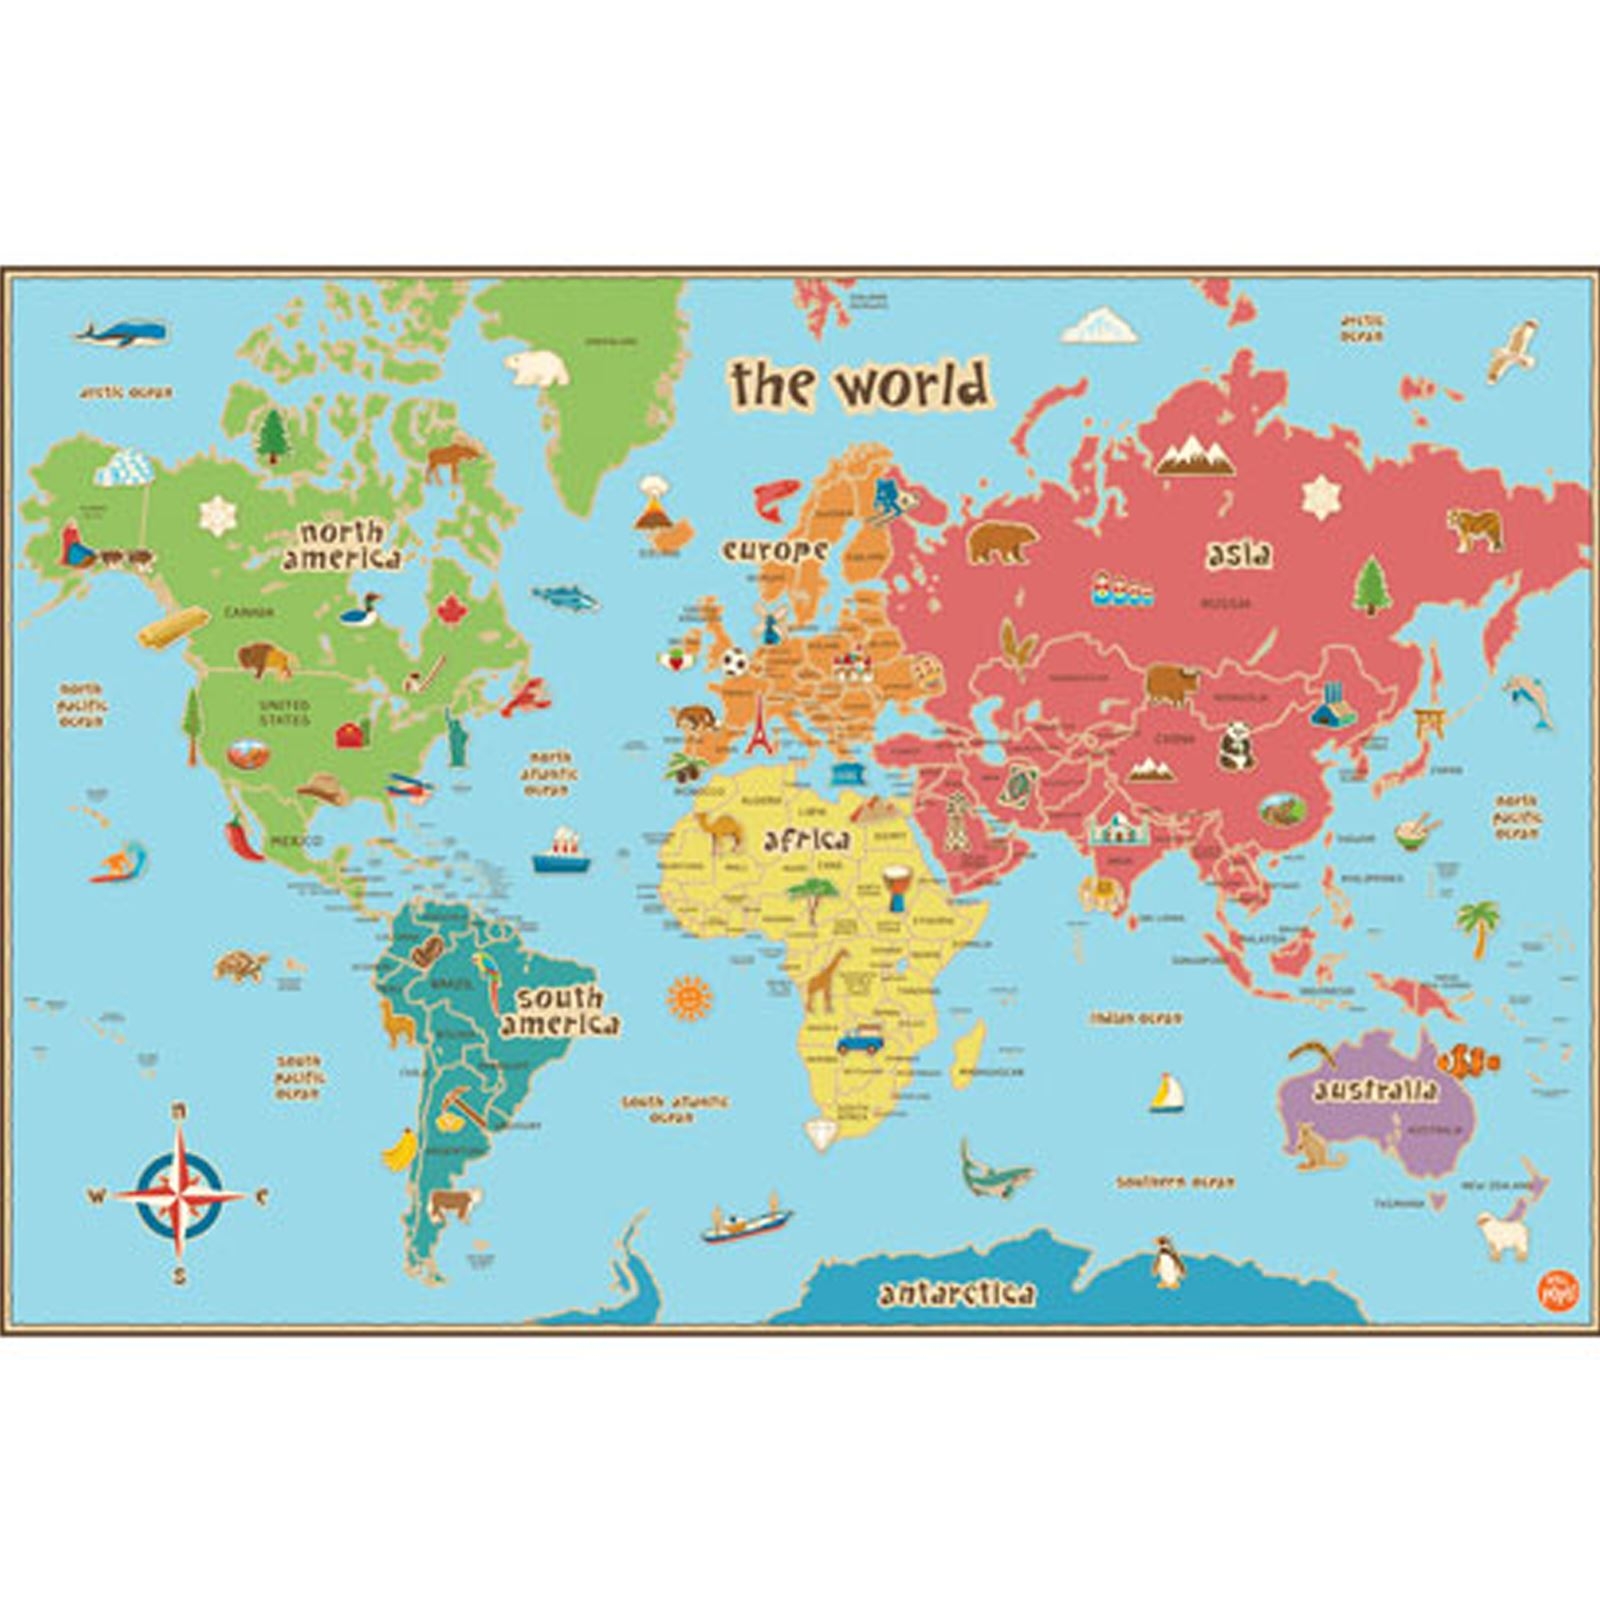 Map Of South Africa For Kids.Details About World Kids Map Laminated Dry Erase Includes Pen Kids Bedroom Playroom